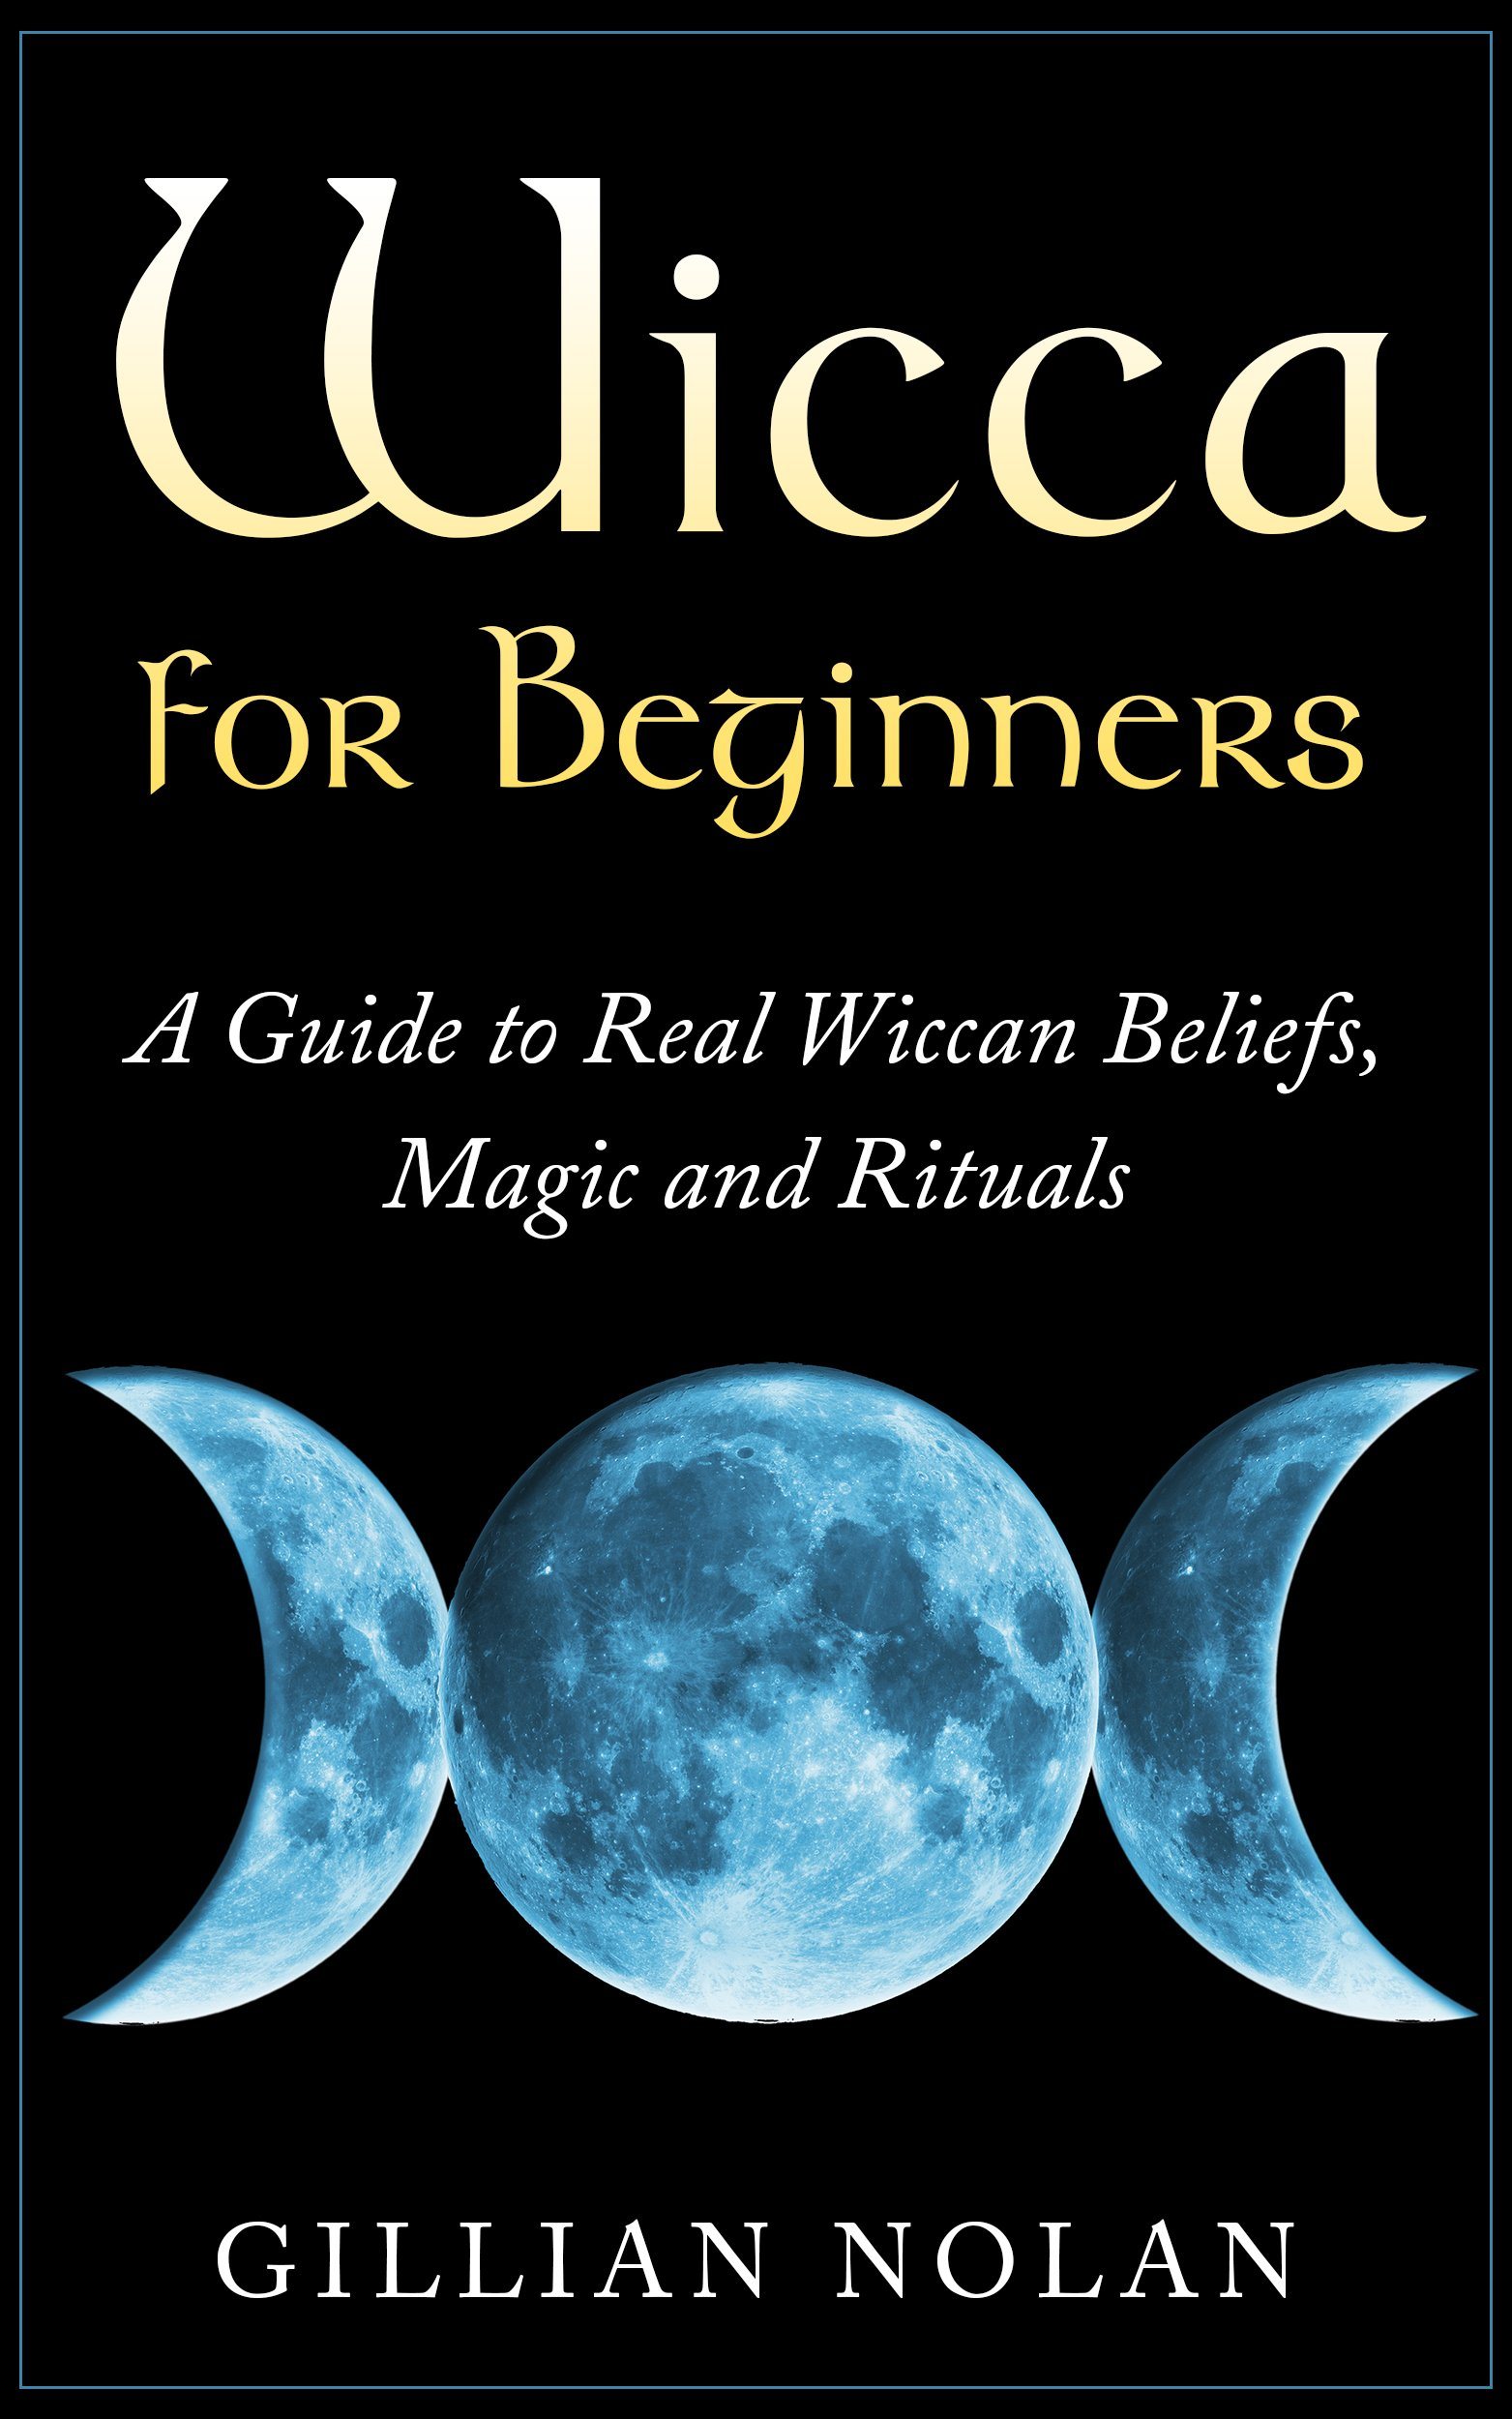 Wicca For Beginners  A Guide To Real Wiccan BeliefsMagic And Rituals  Wiccan Spells   Witchcraft   Wicca Traditions   Wiccan Love Spells   English Edition